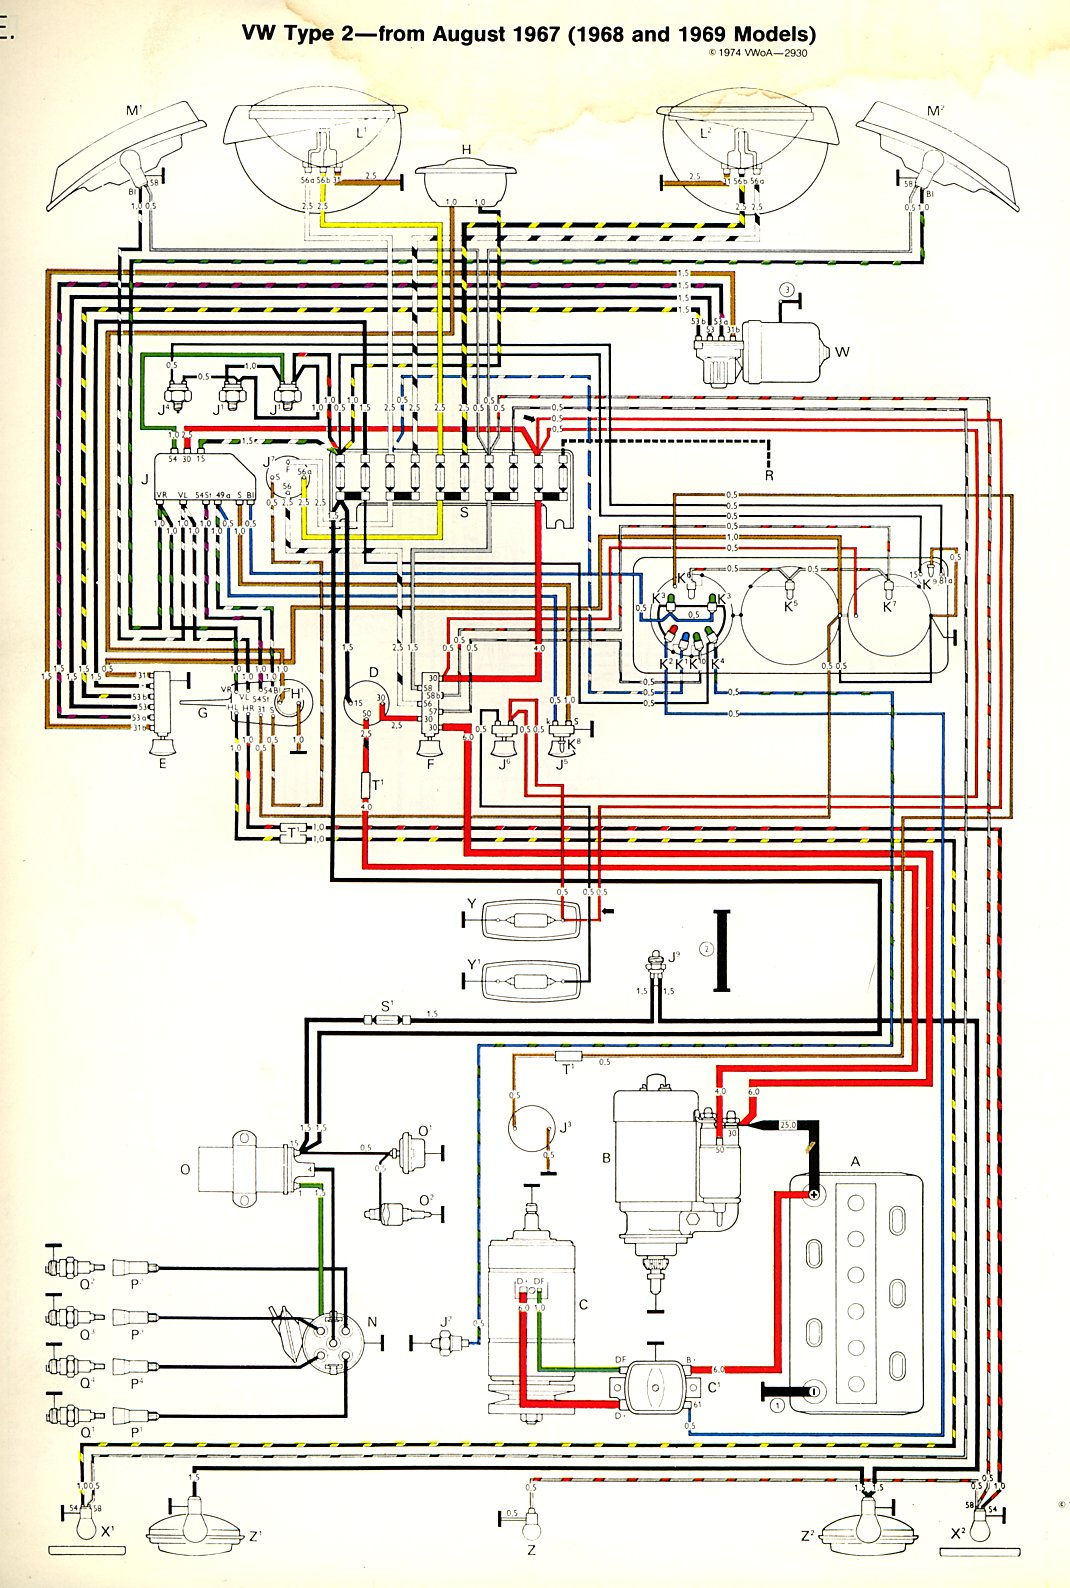 Type 2 Wiring Diagrams 1980 Jeep Cj7 Fuse Box Diagram